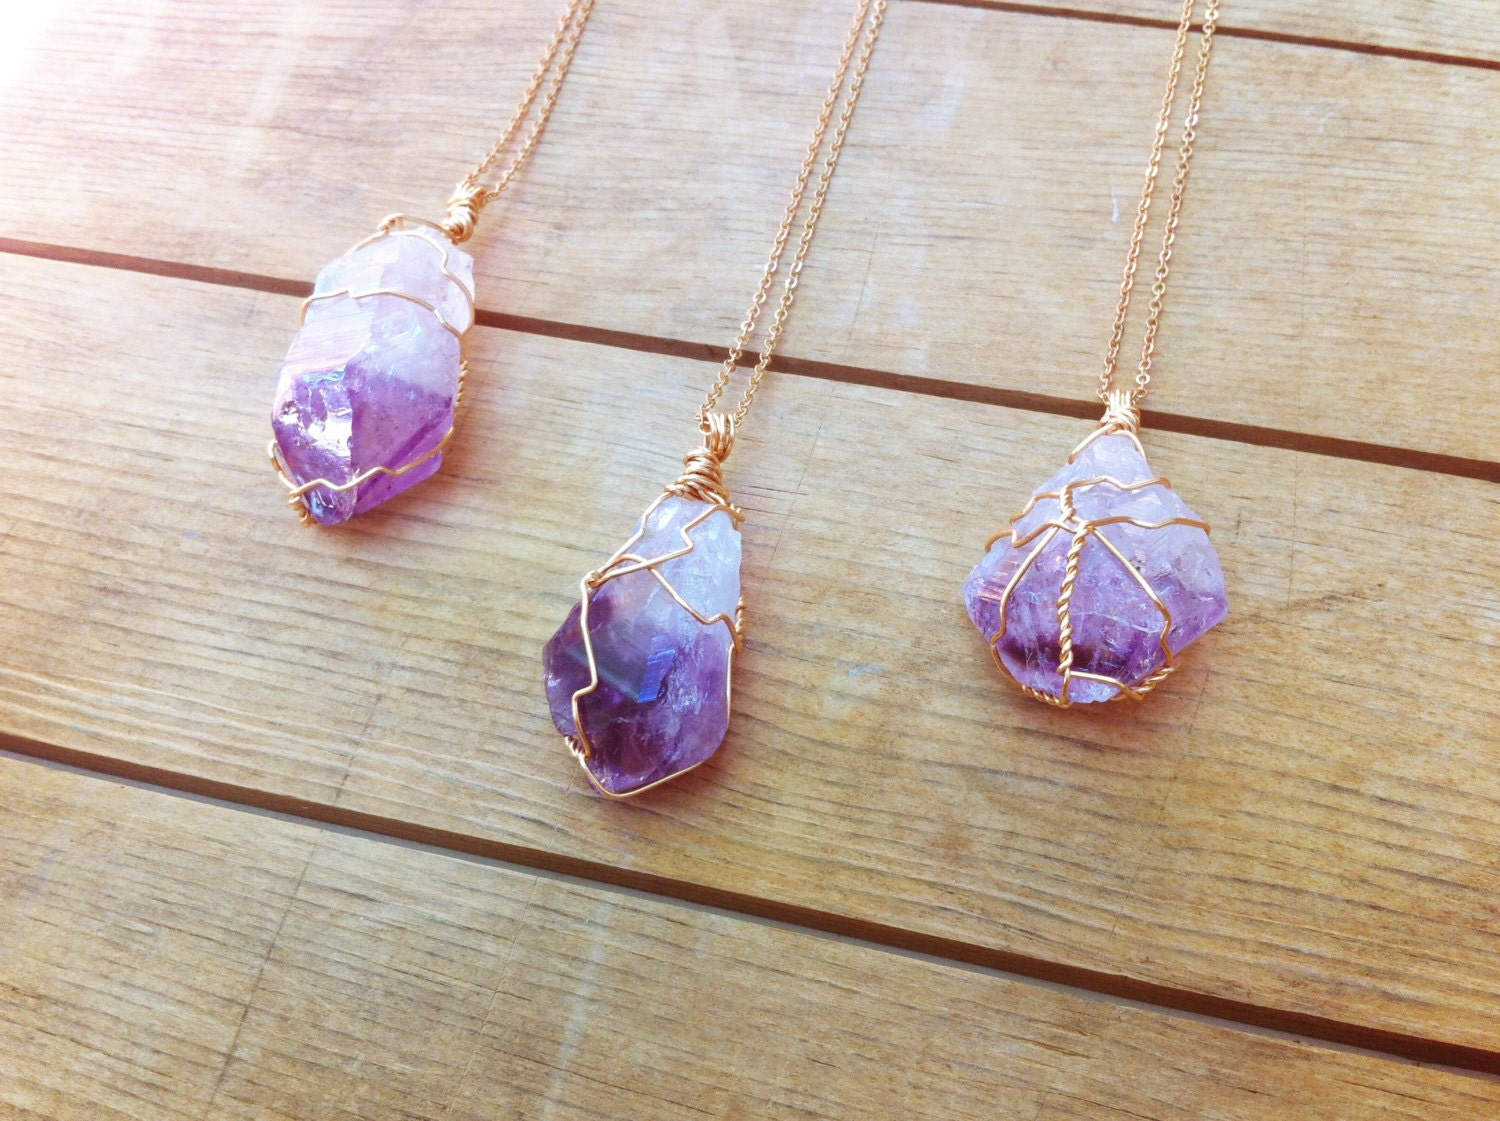 amethyst stone necklace - photo #43